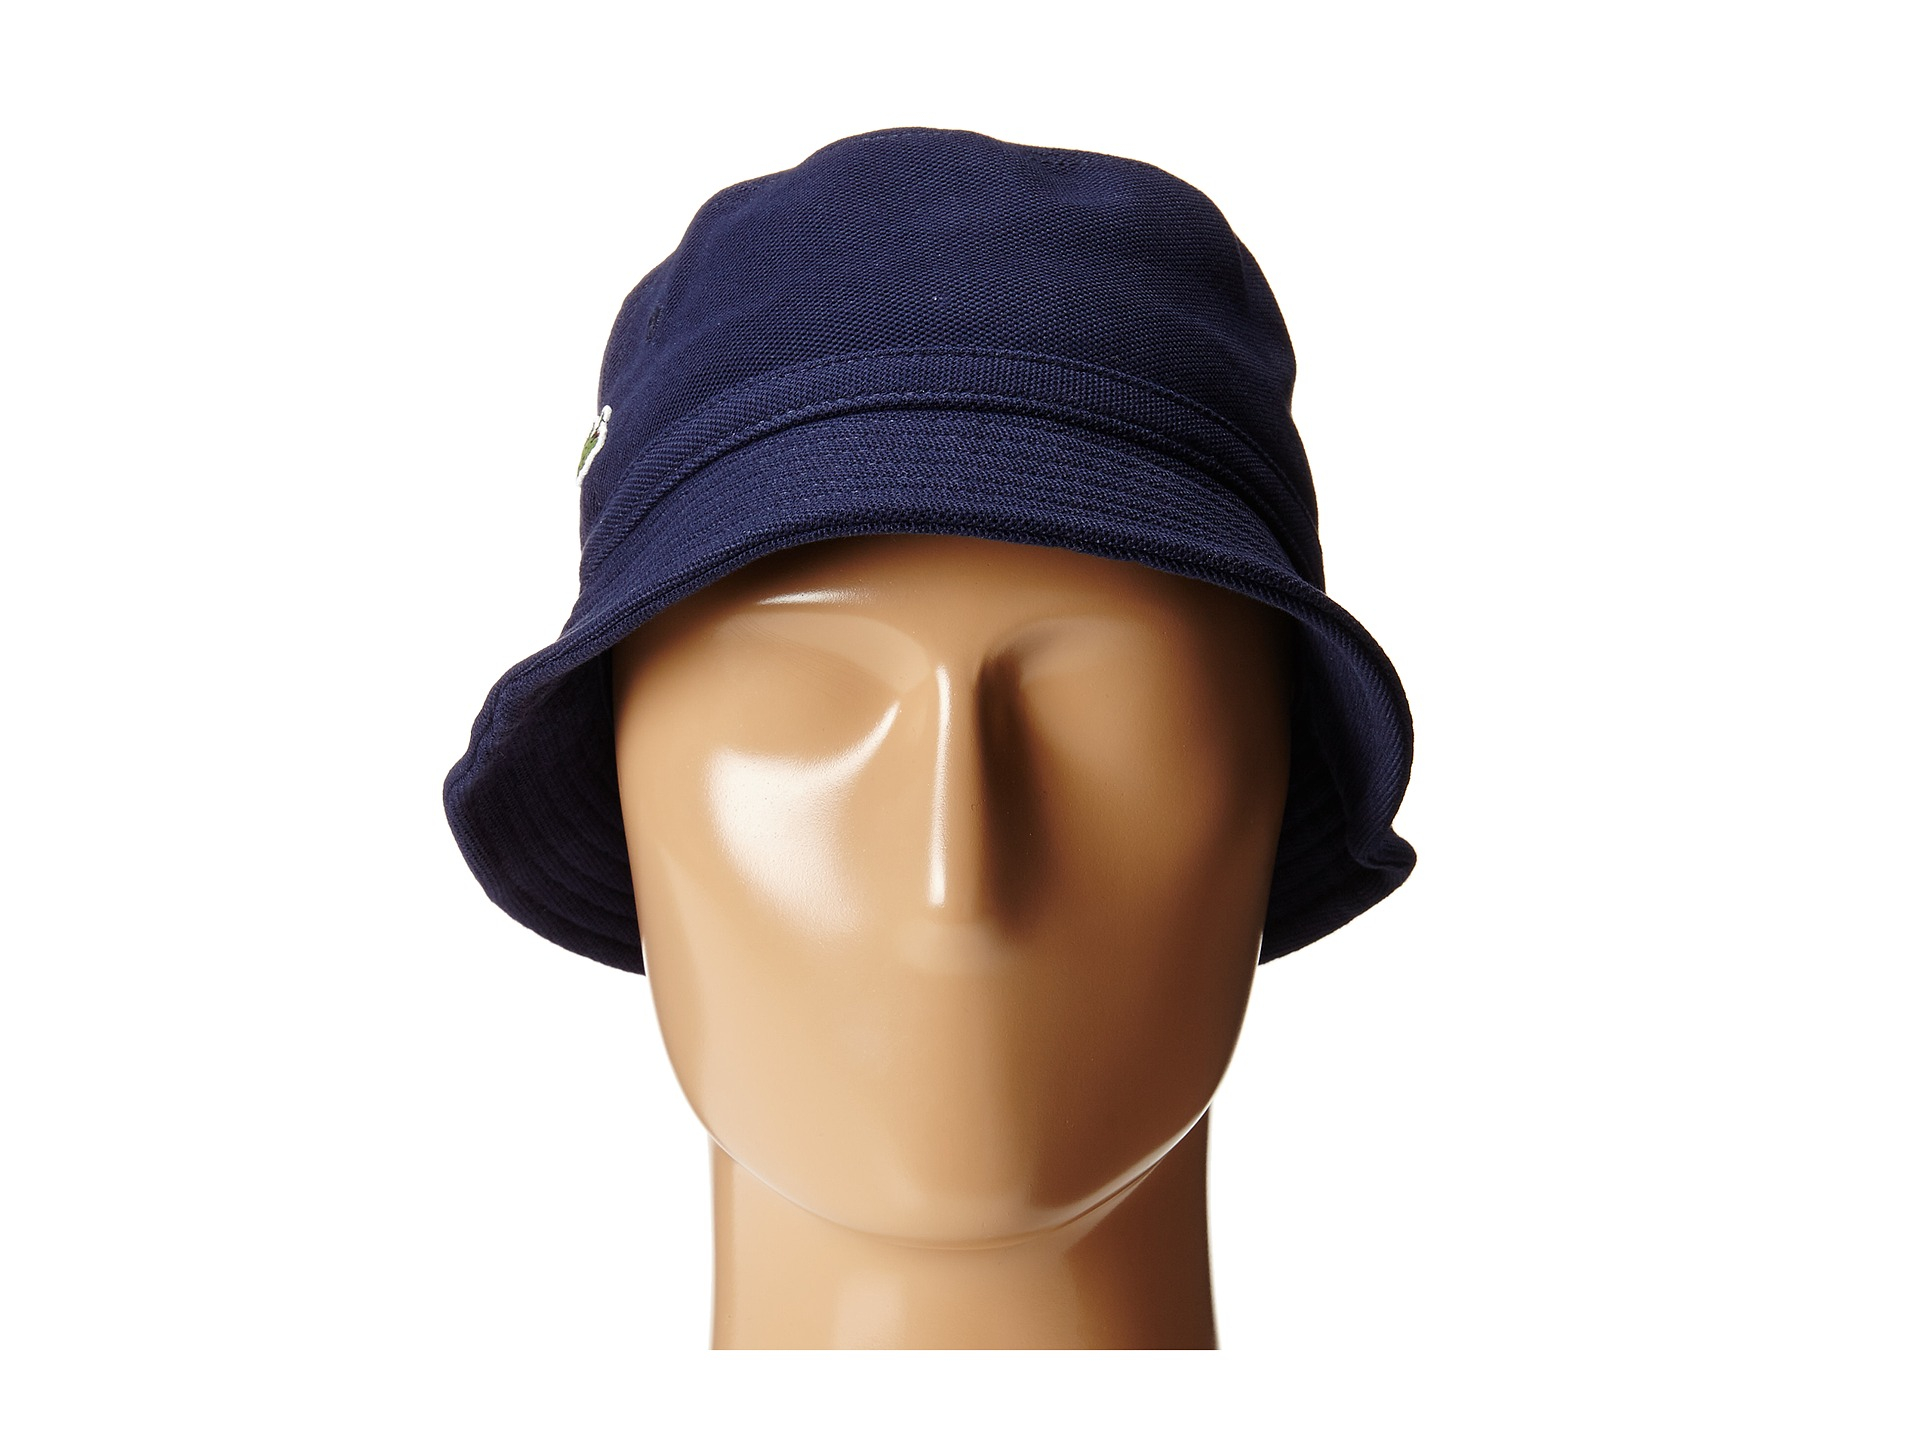 Lyst - Lacoste Pique Bucket Hat in Blue for Men e2bc32b6bbcd